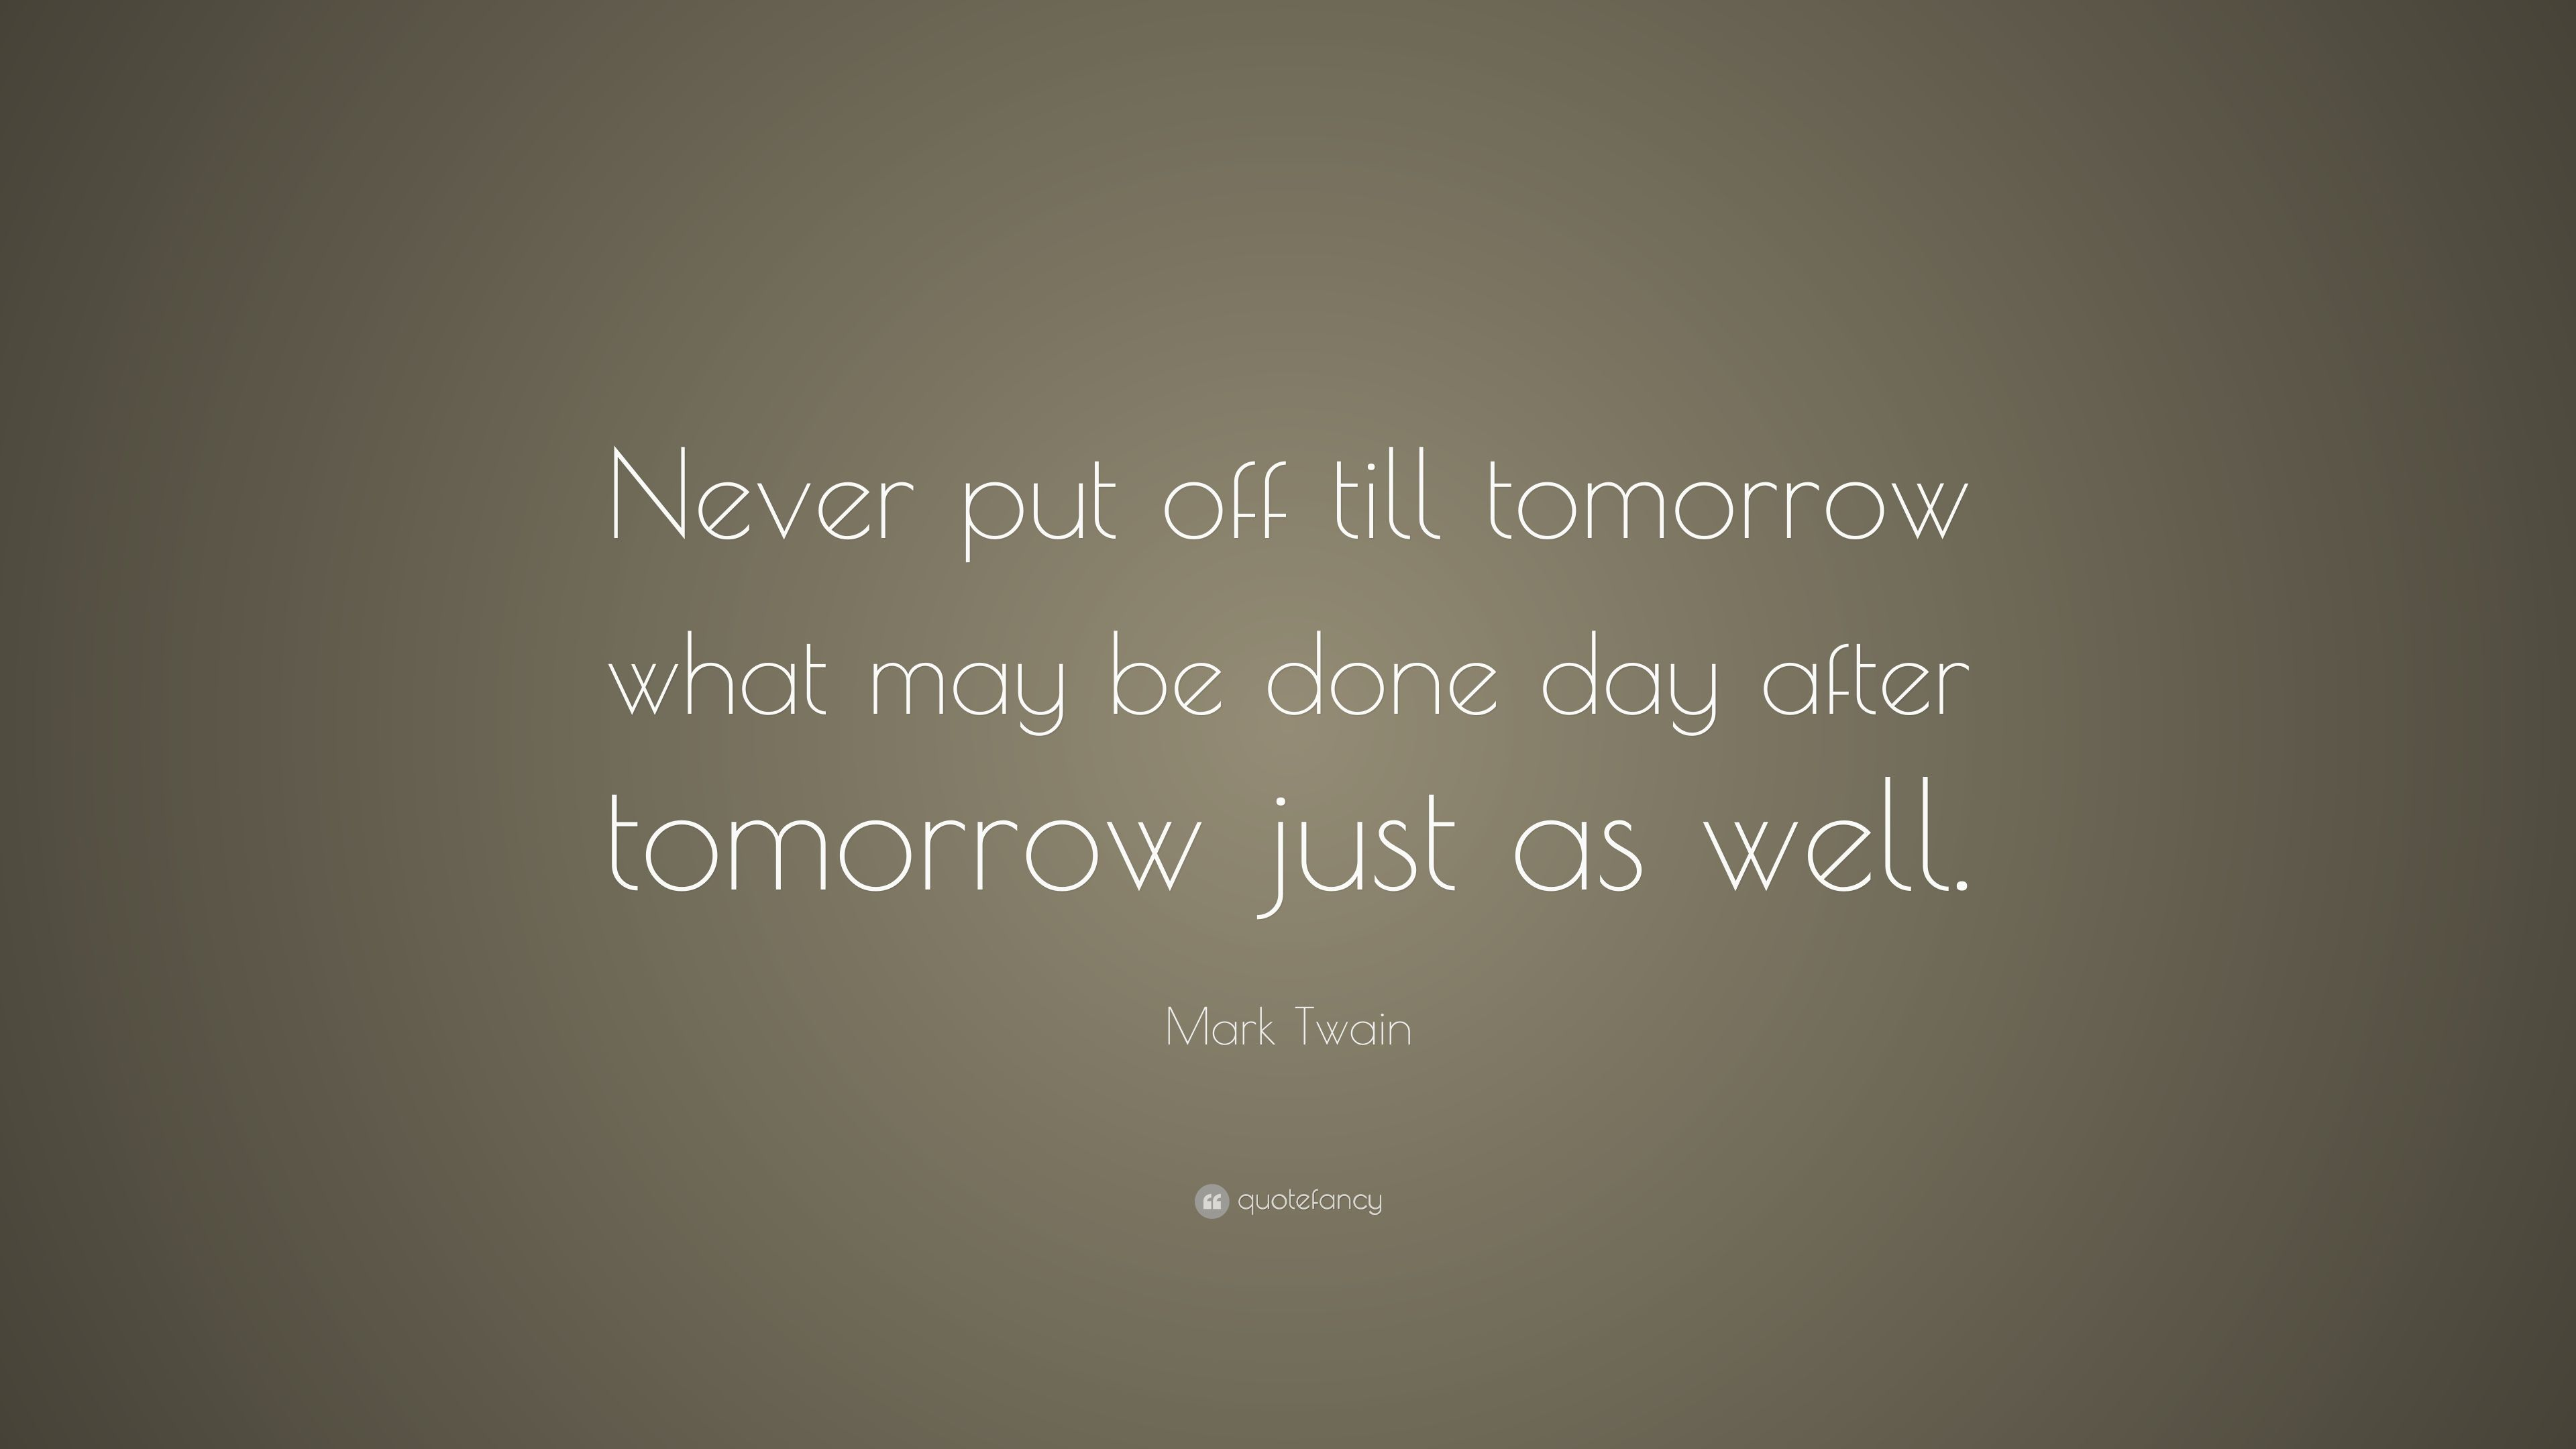 Image Result For Never Put Off Till Tomorrow What May Be Done Day